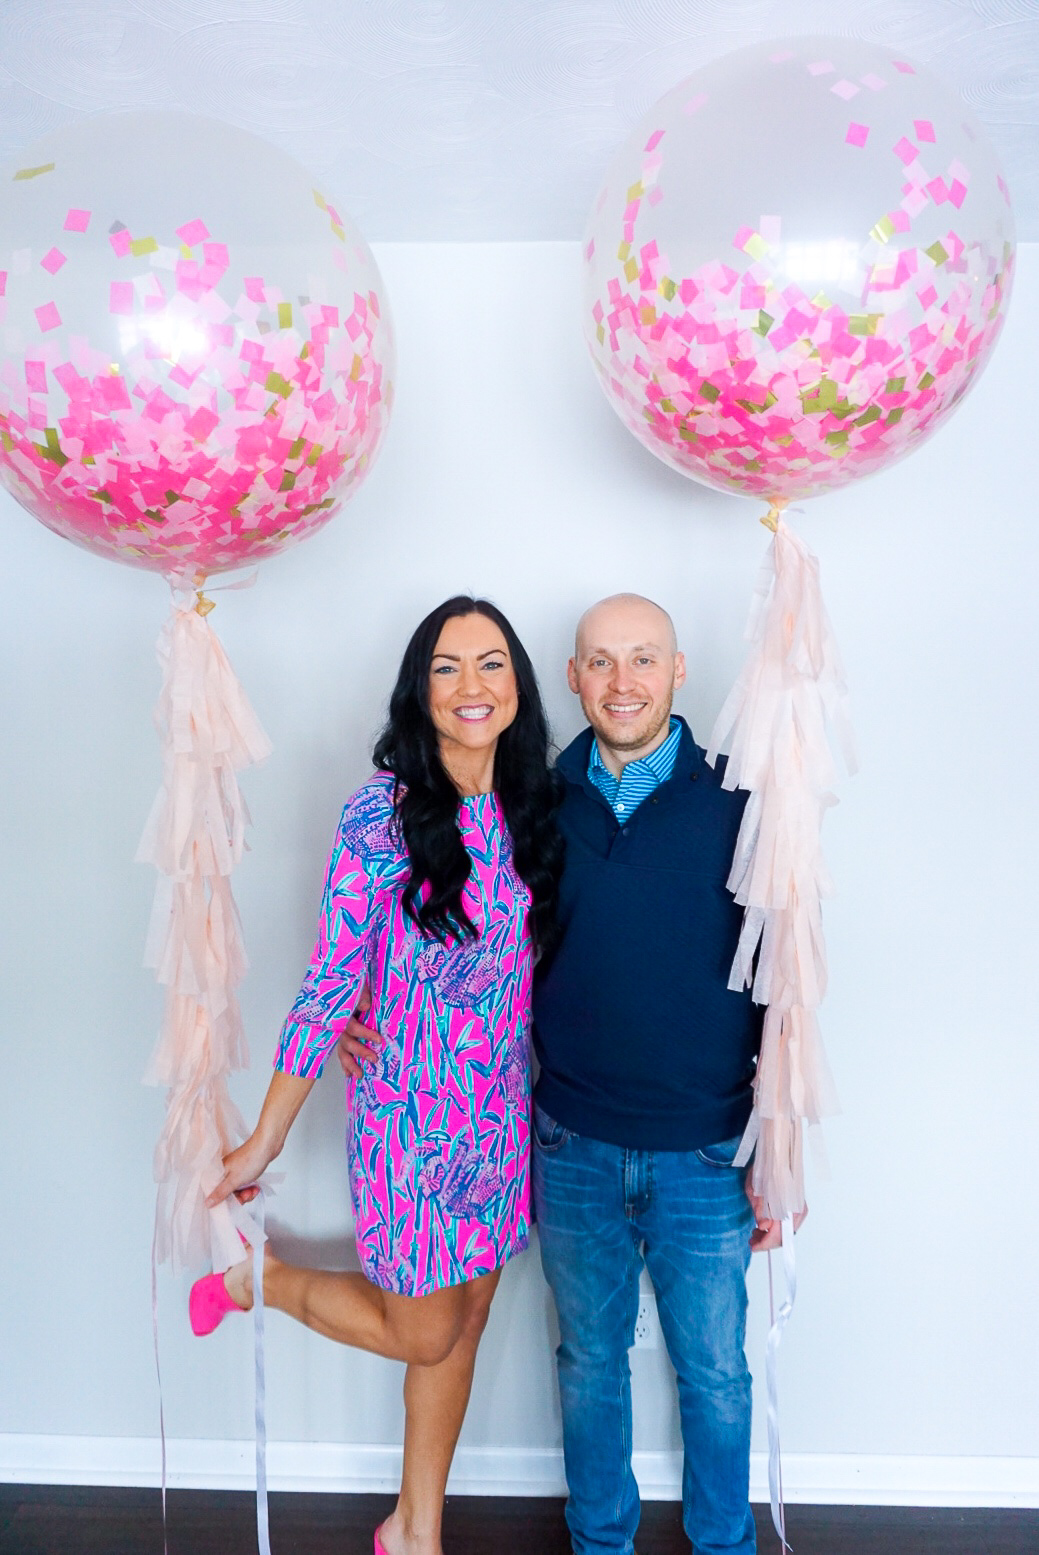 blogger party, preppy blogger, preppy pink blog, Lilly Pulitzer blogger